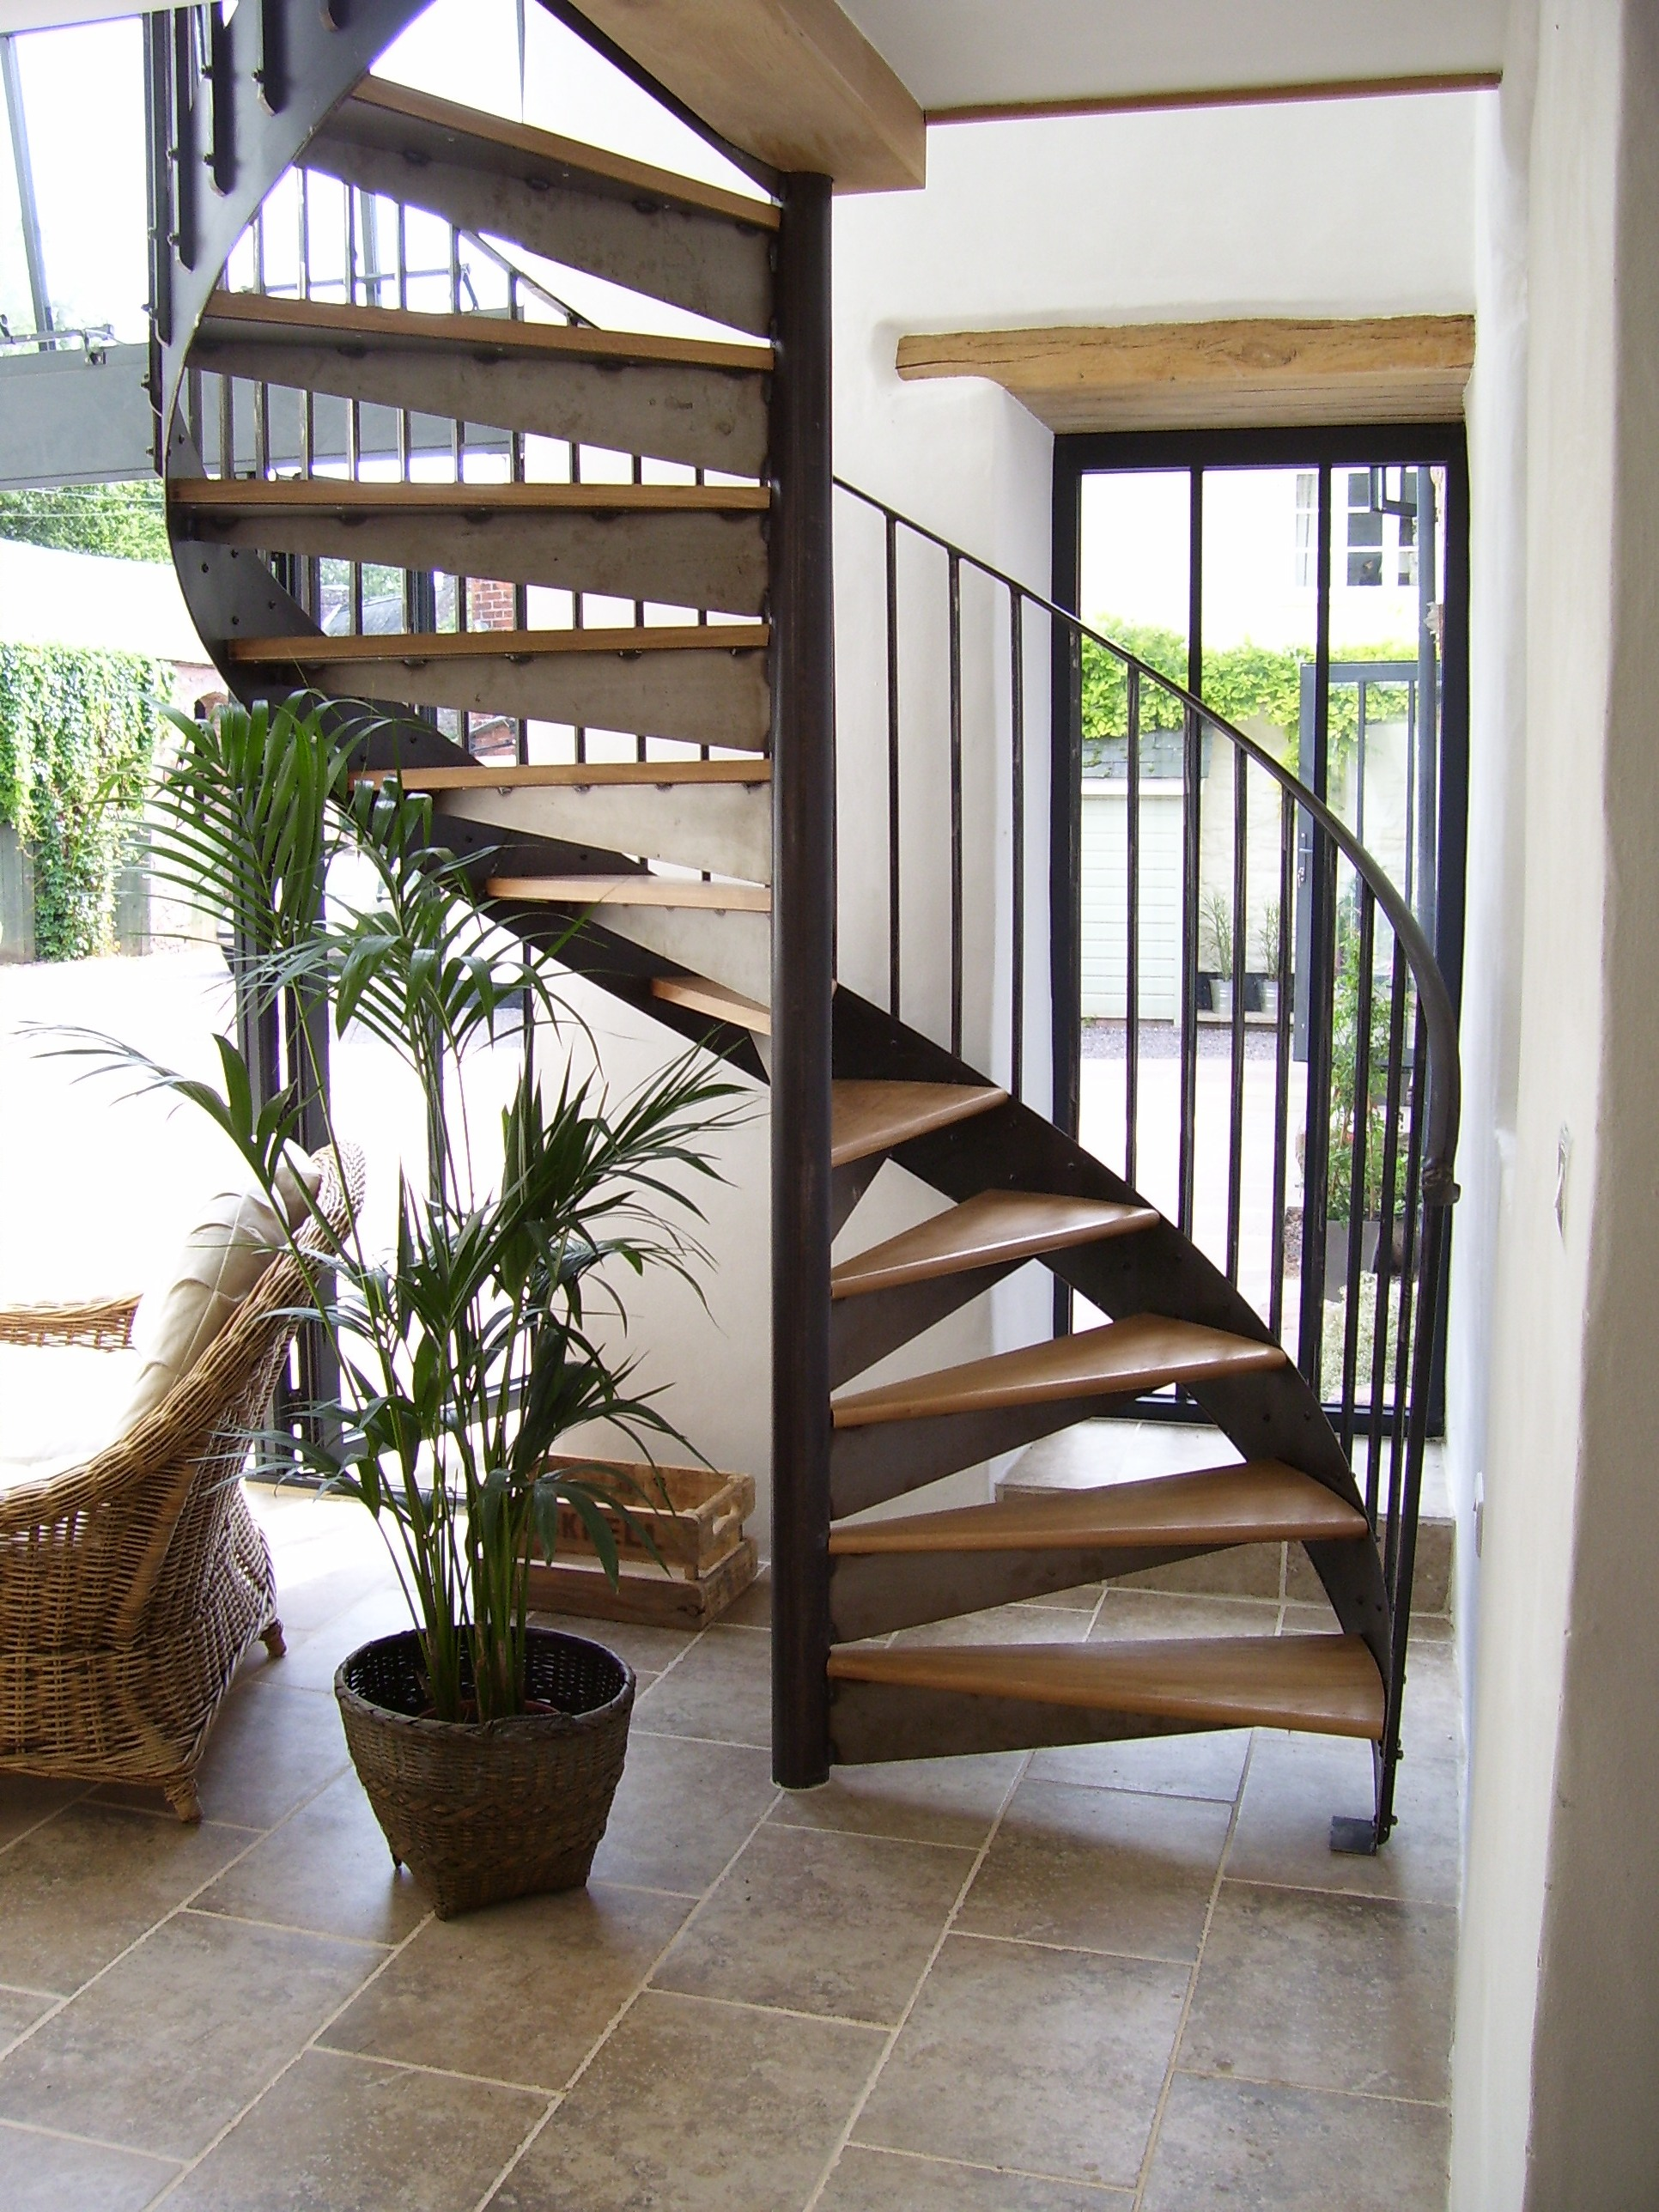 Wrought iron staircase spiral staircases and balustrades for Spiral stair design